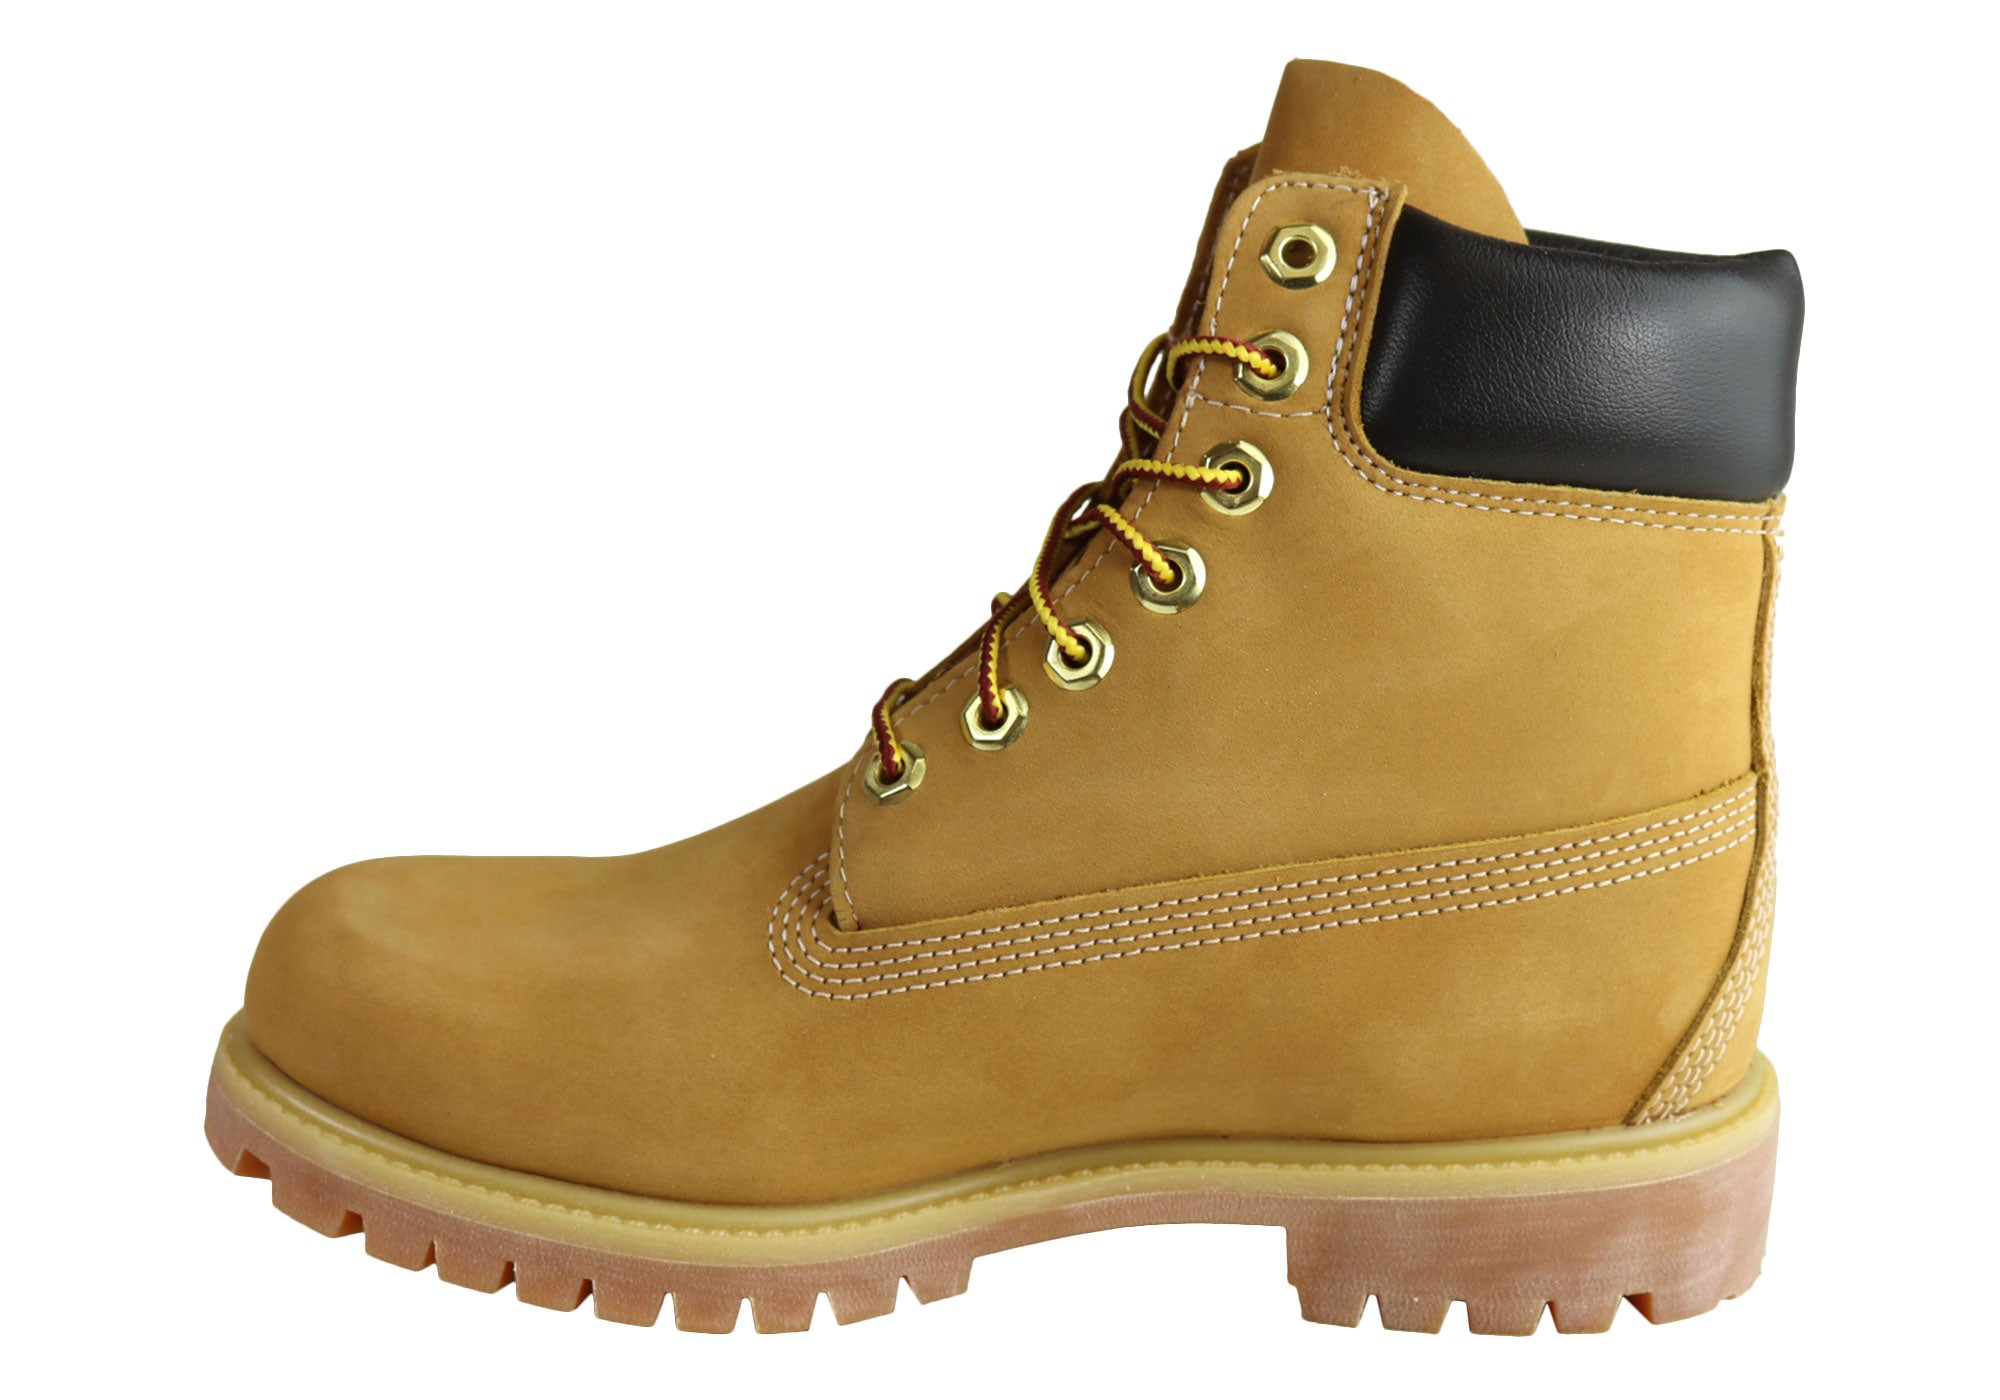 NEW-TIMBERLAND-MENS-COMFORTABLE-LACE-UP-6-INCH-PREMIUM-WATERPROOF-BOOTS thumbnail 7